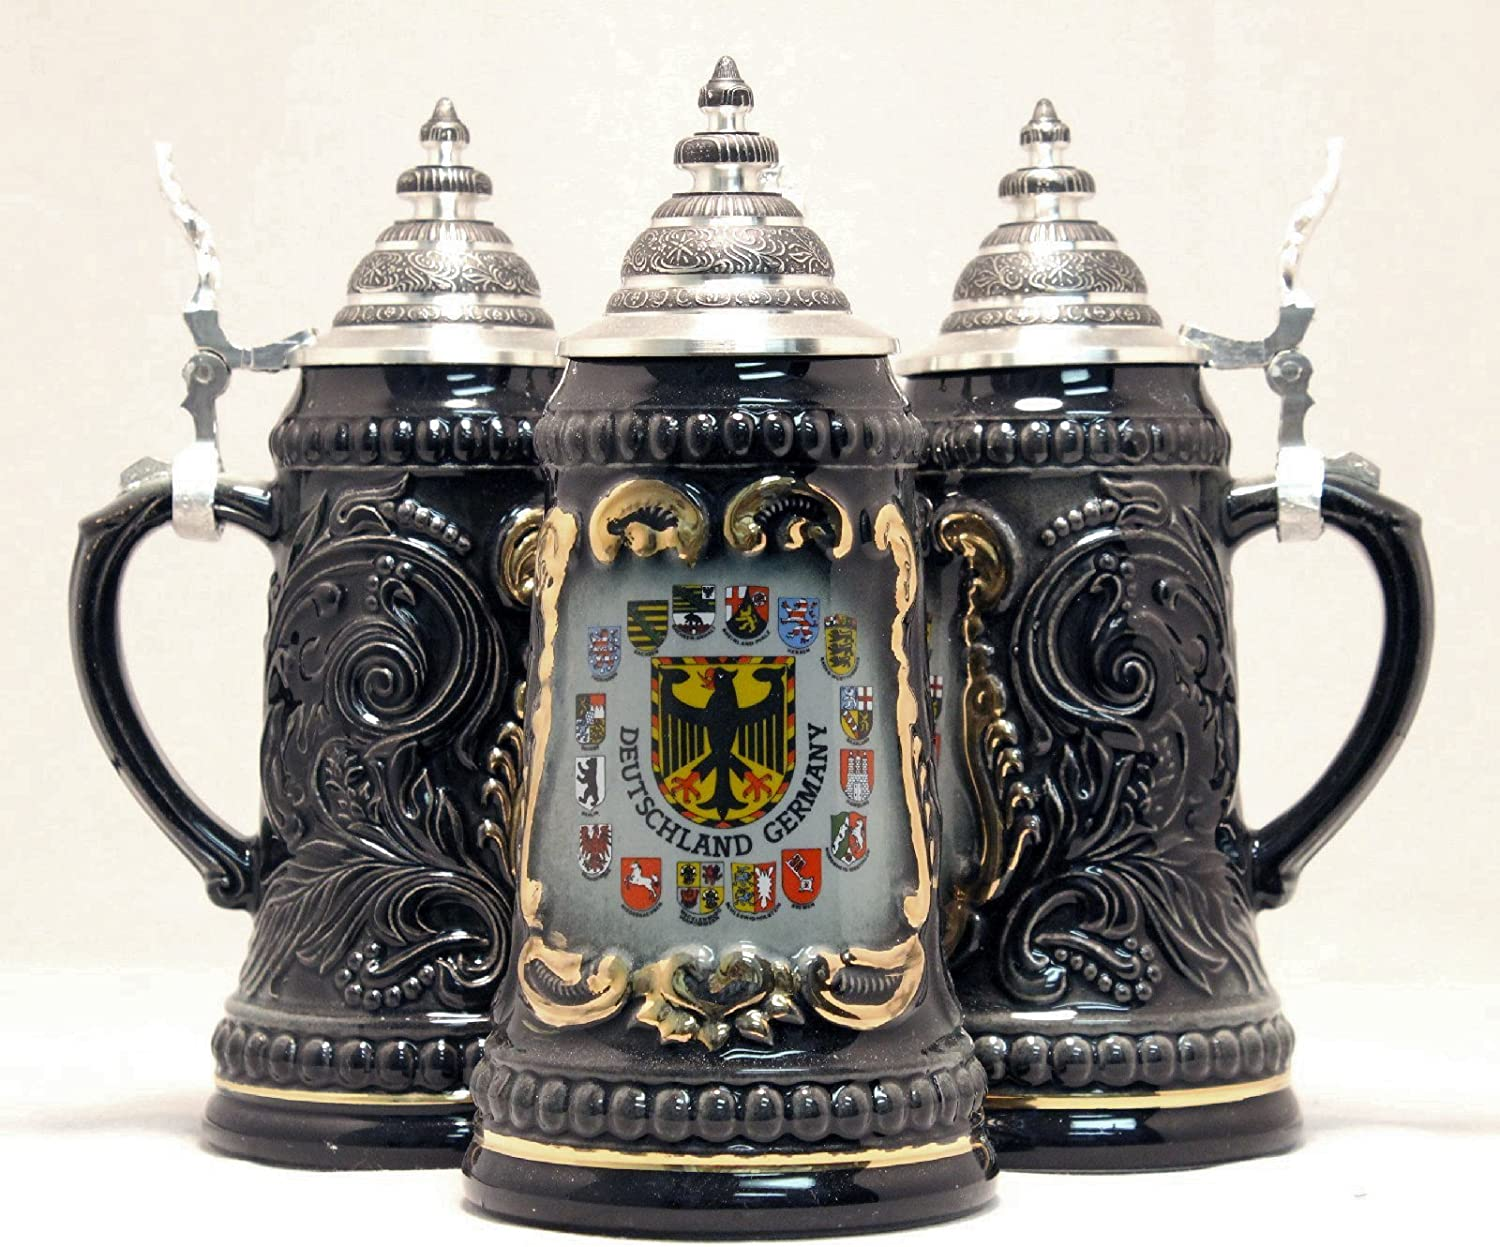 Deutschland Germany Eagle with State Beer Stein latest New popularity .5 German Crests